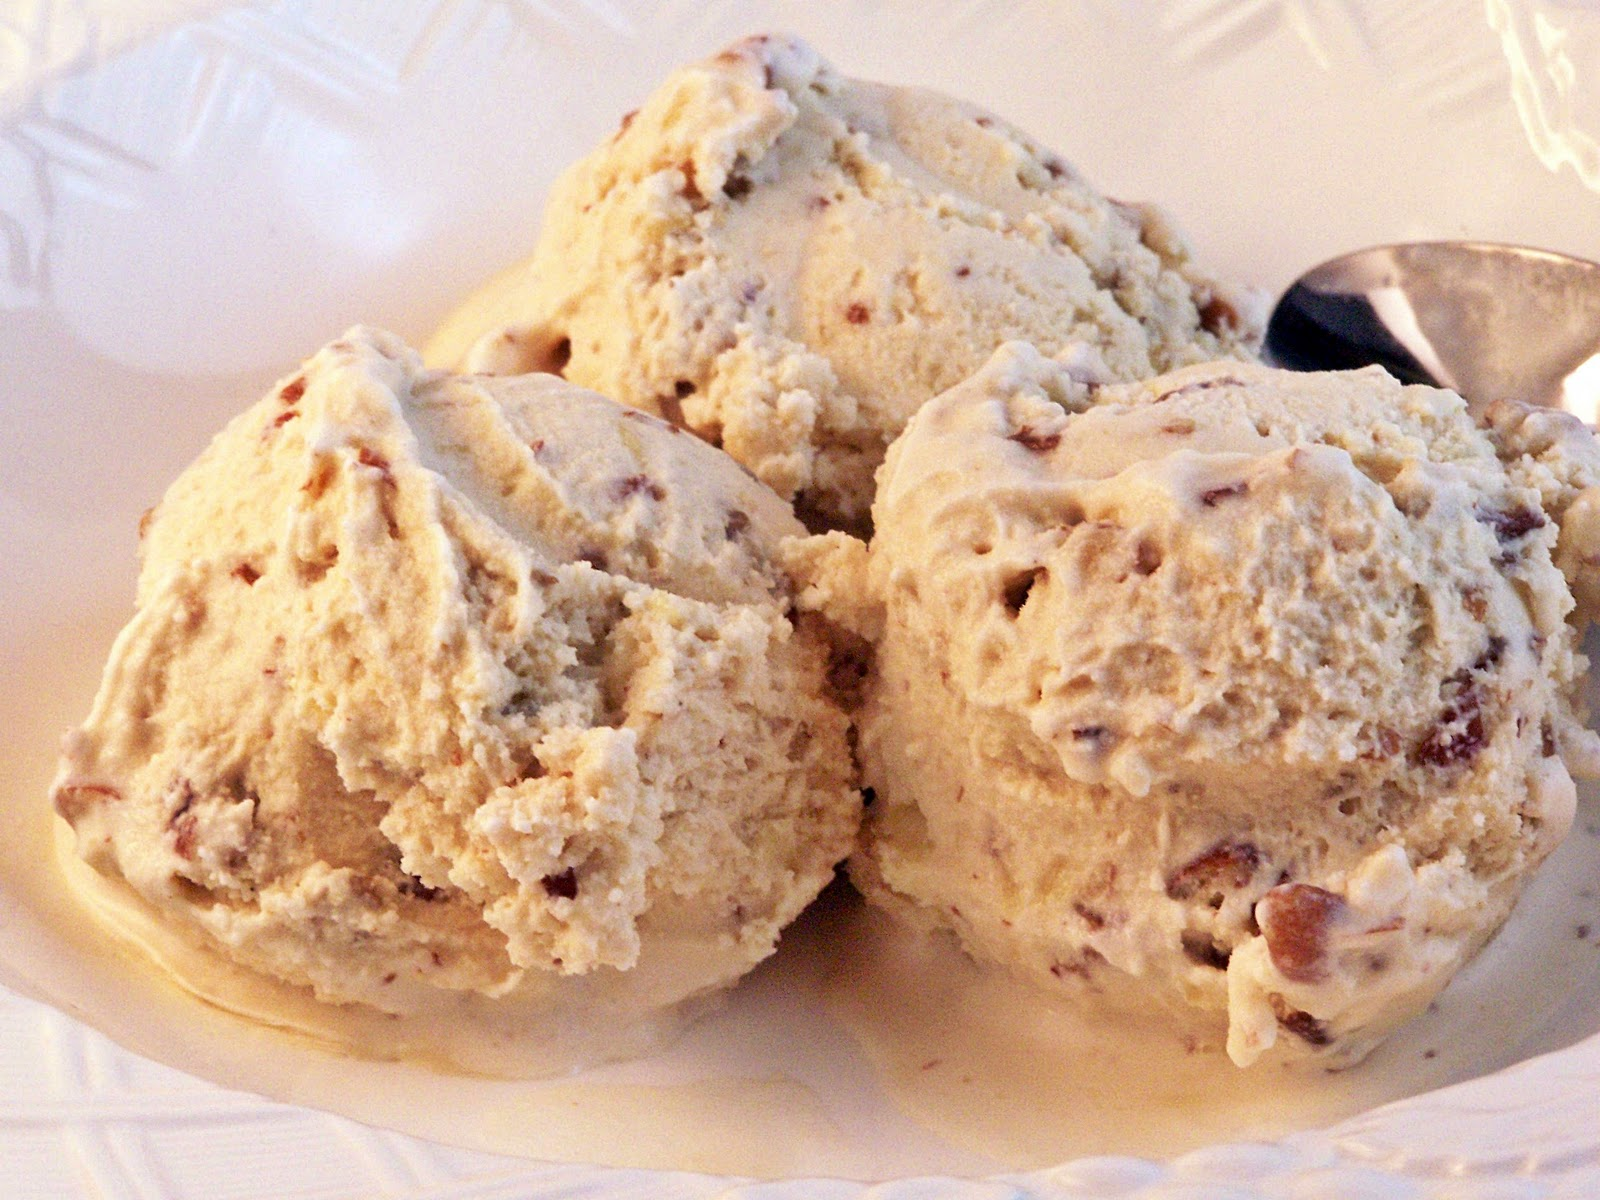 Butter Pecan Ice Cream for Ice Cream Sunday